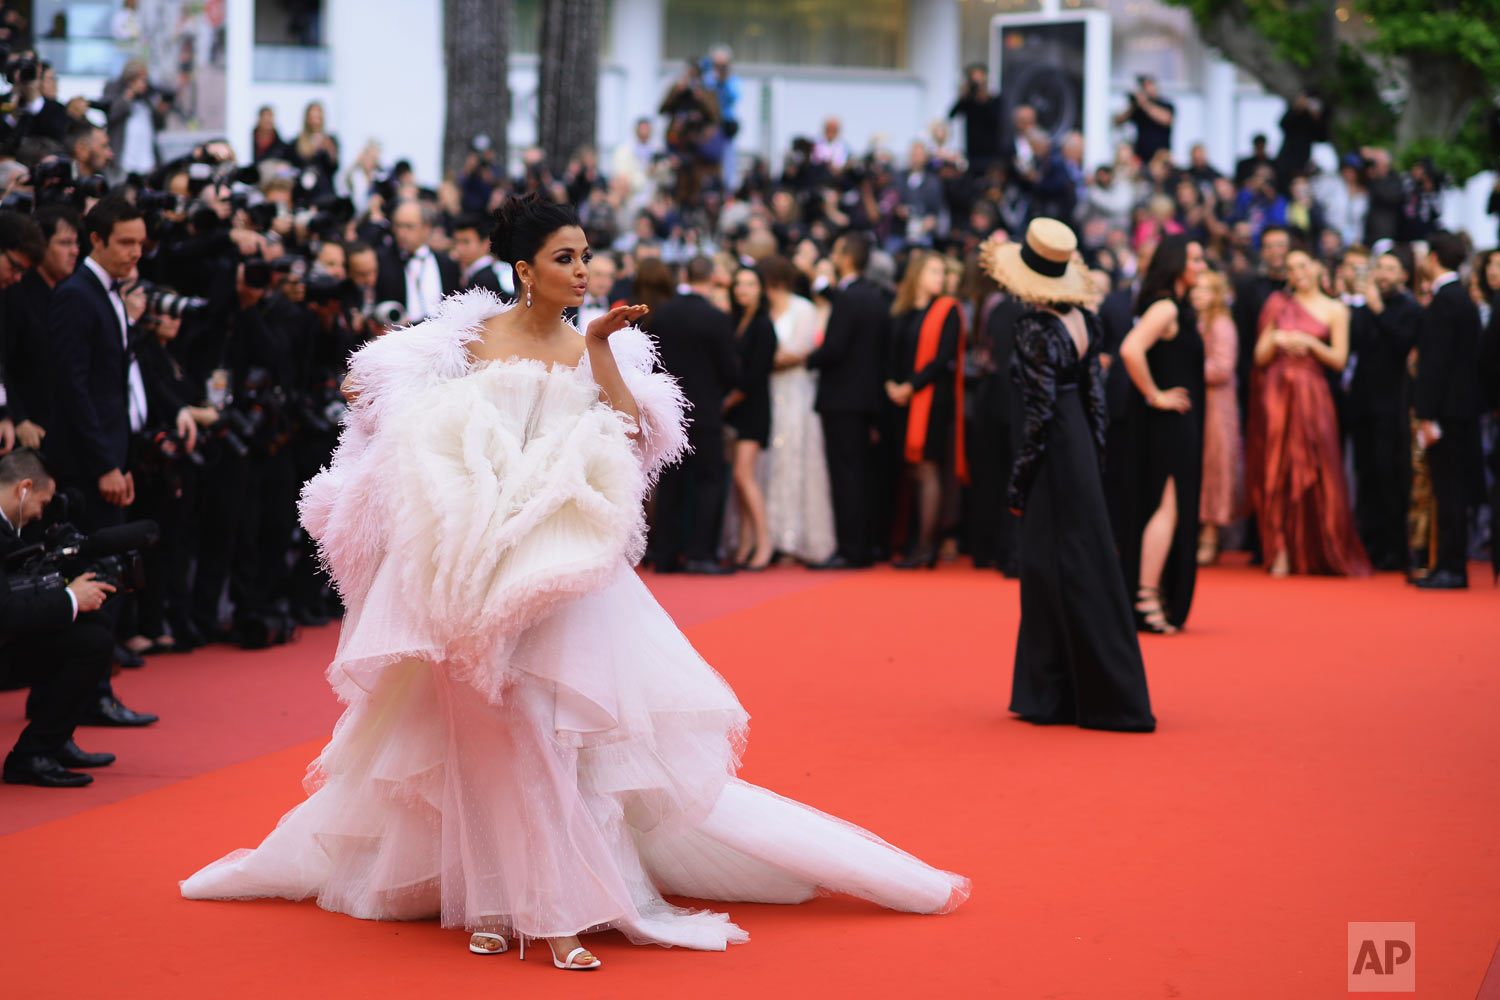 Actress Aishwarya Rai Bachchan poses for photographers upon arrival at the premiere of the film 'La Belle Epoque' at the 72nd international film festival, Cannes, southern France, May 20, 2019. (Photo by Arthur Mola/Invision/AP)